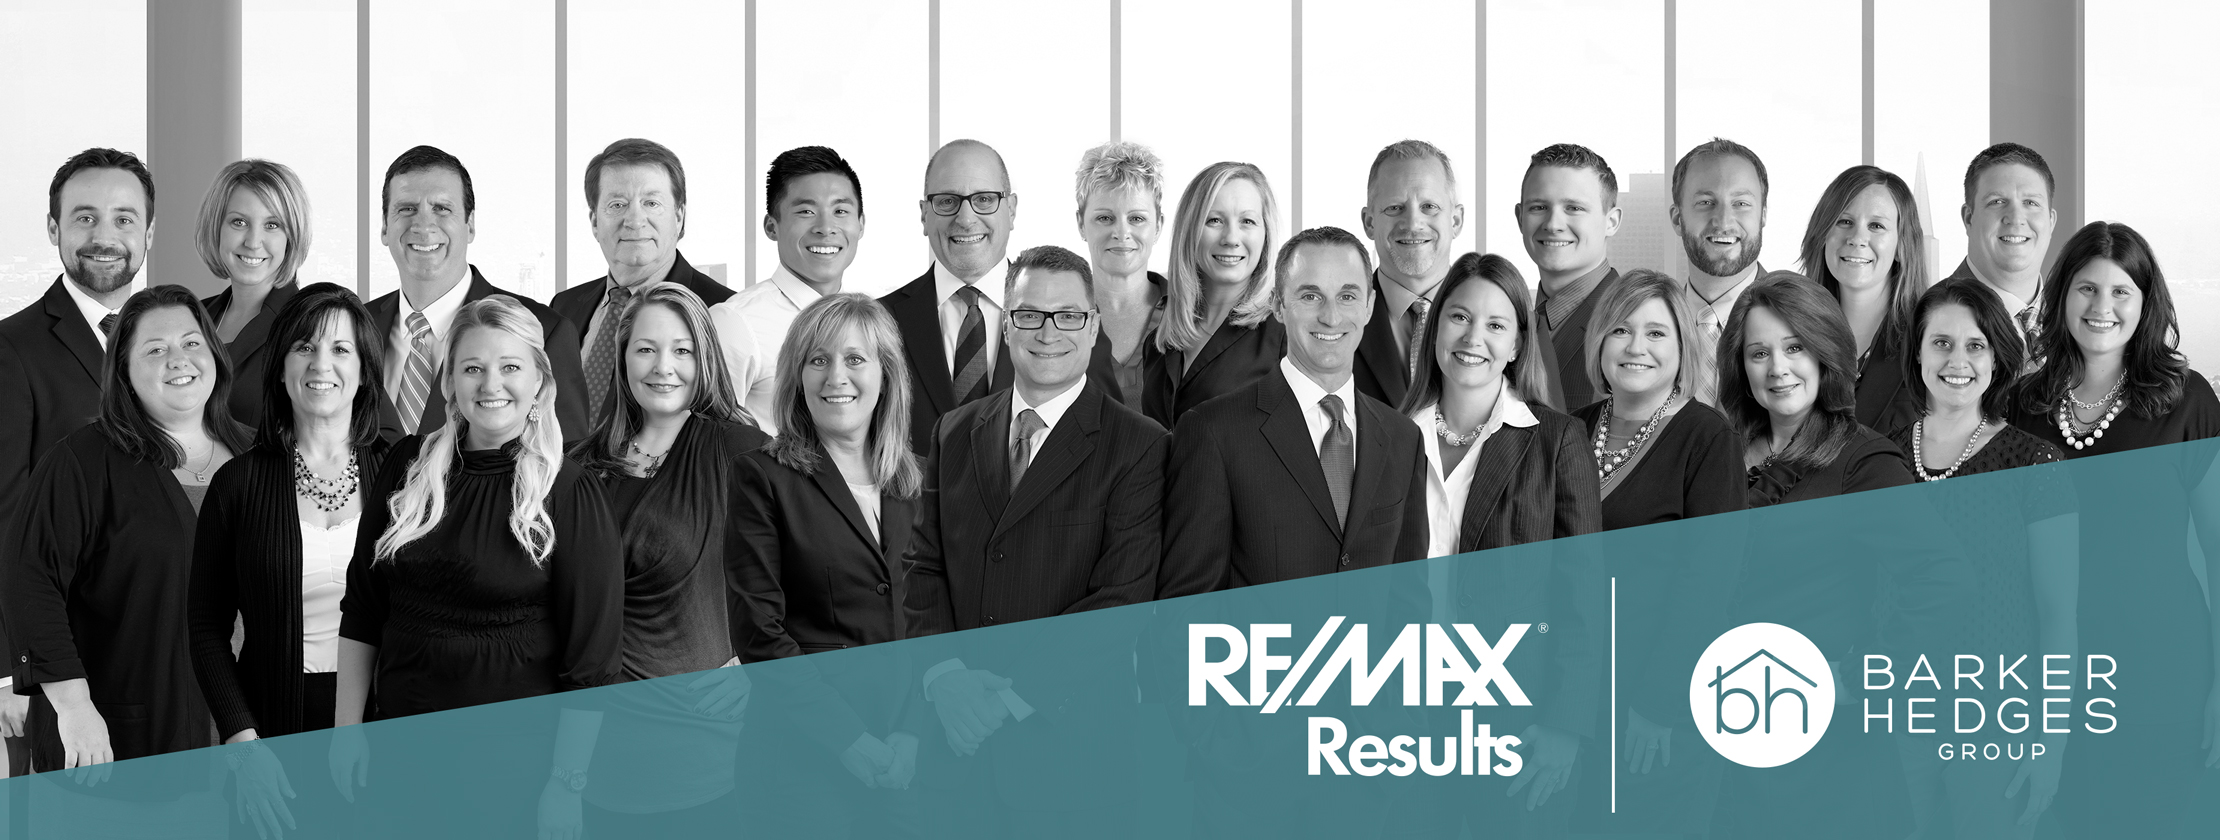 RE/MAX Results - Barker Hedges Group logo